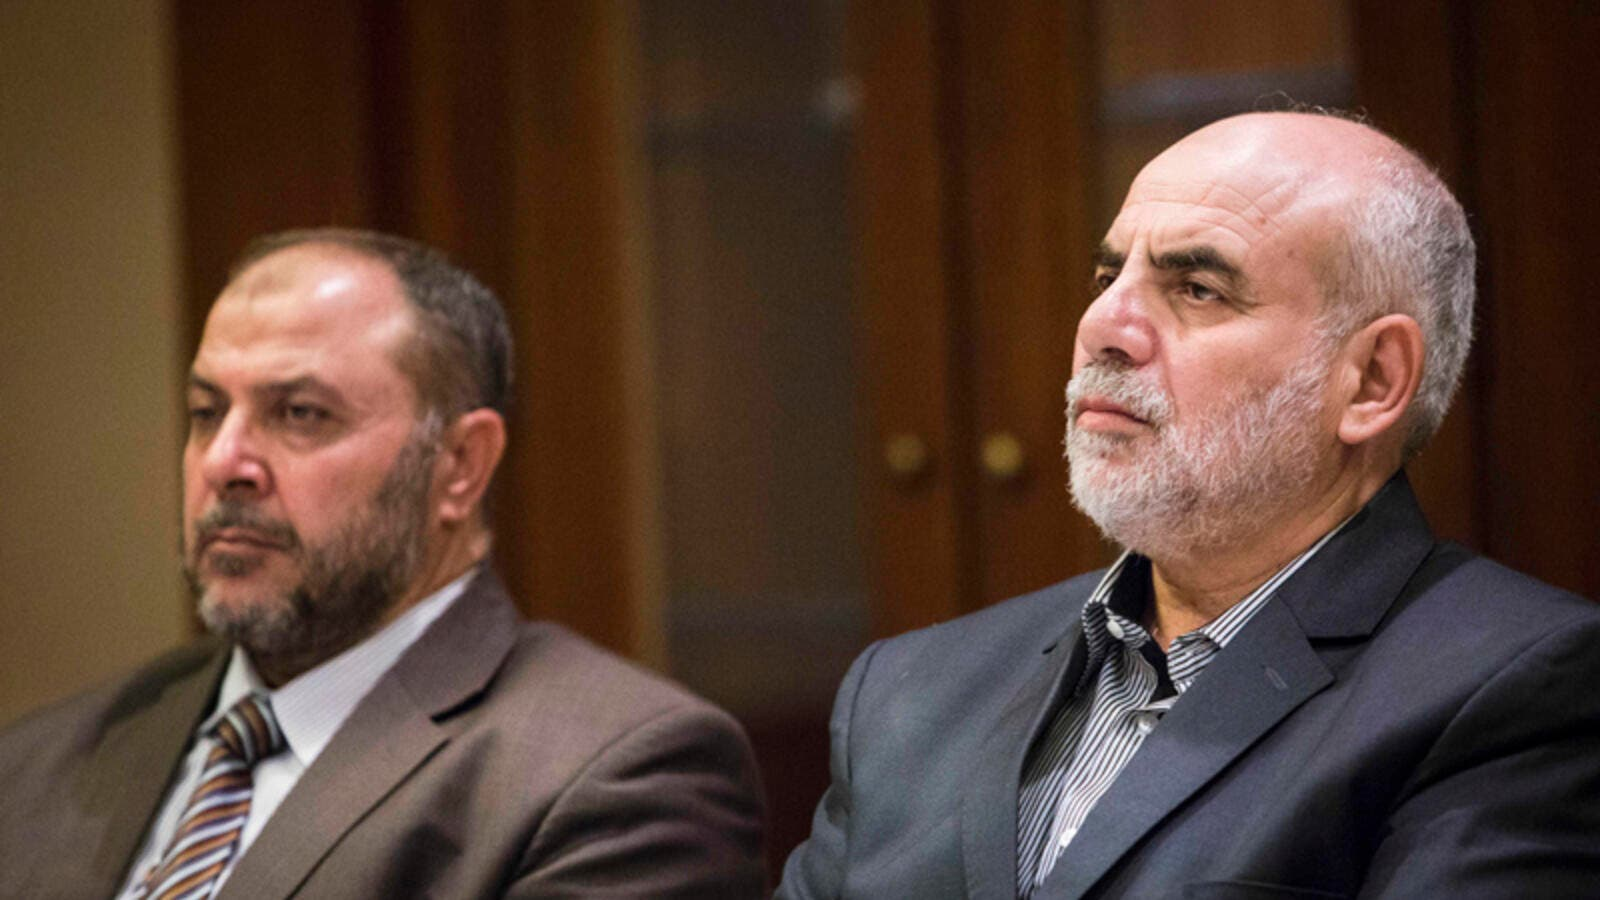 Zaki Bani Irsheid (L), former deputy of the Islamic Action Front, and Mohammad Zyoud, party chief of the Islamic Action Front, speaks during a meeting in Amman, Jordan. (Lindsey Leger)